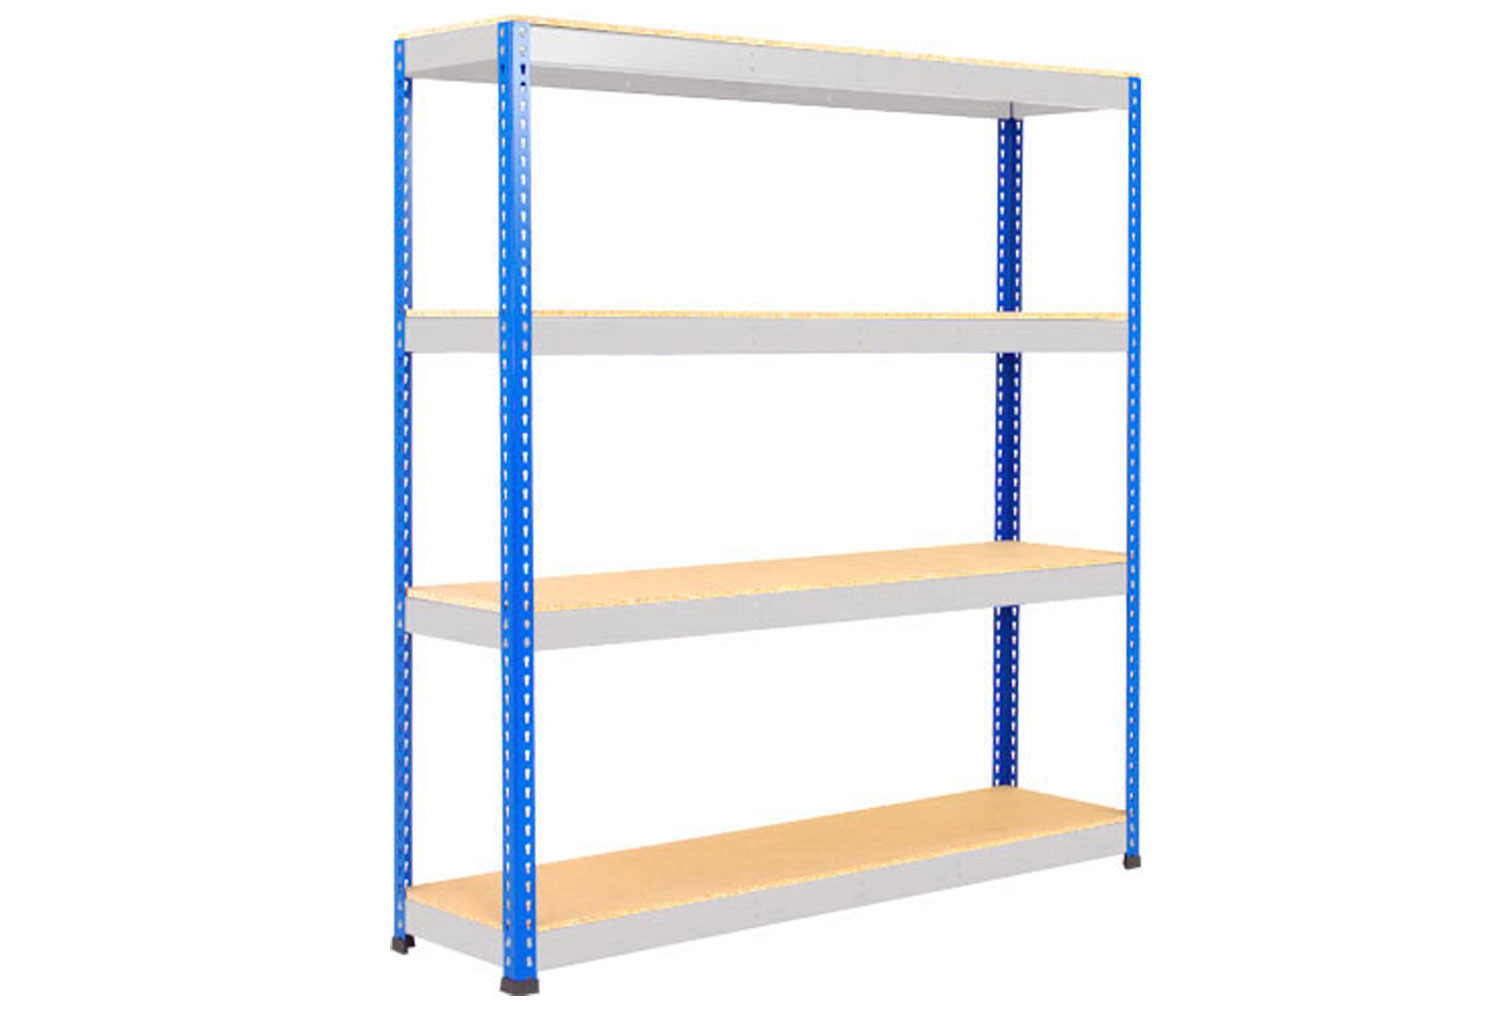 Rapid 1 Standard Shelving With 4 Chipboard Shelves 1830wx1980h (Blue/Grey)